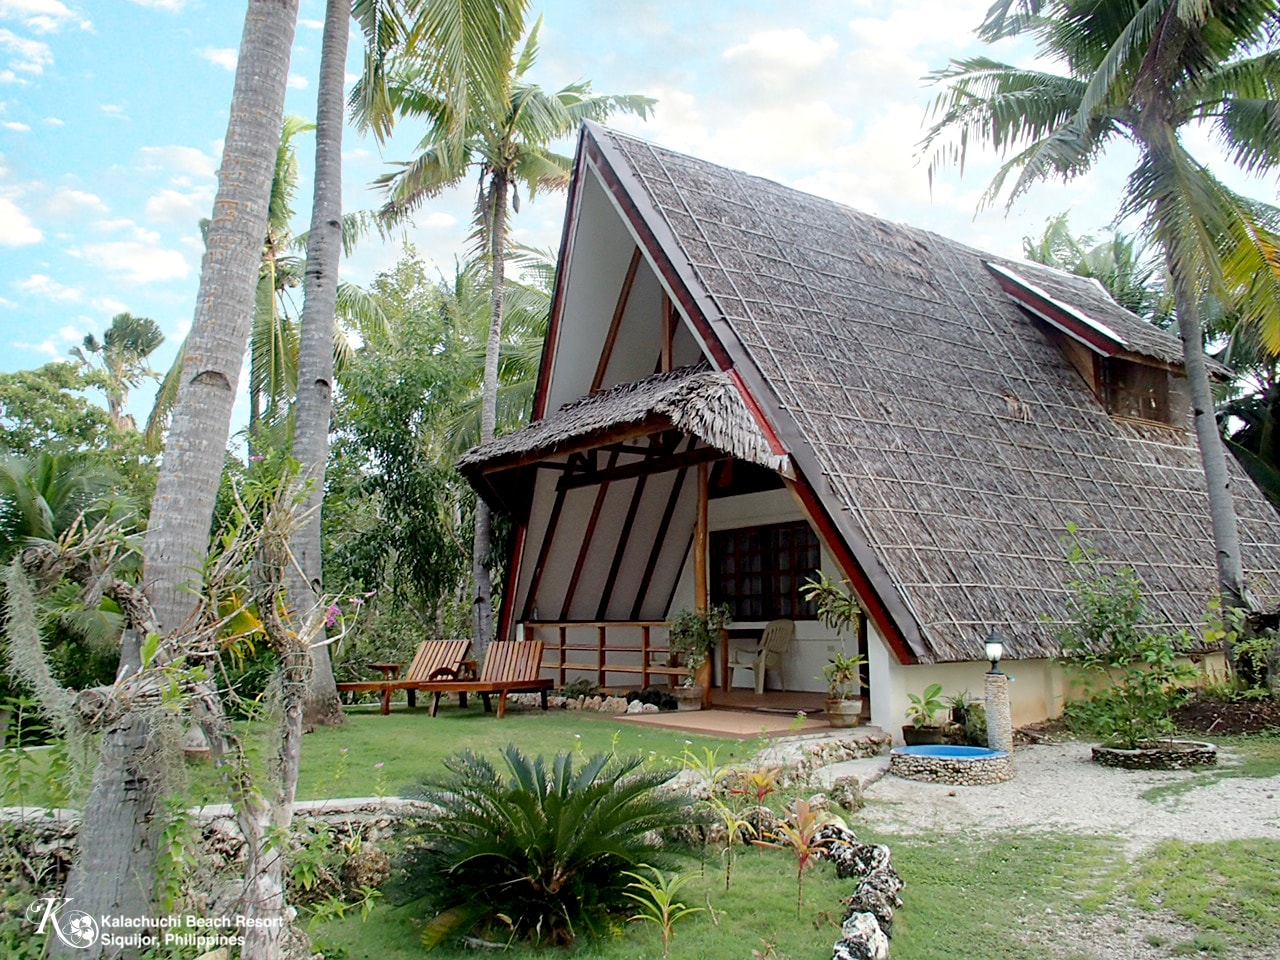 villa_sampaguita - kalachuchi beach resort